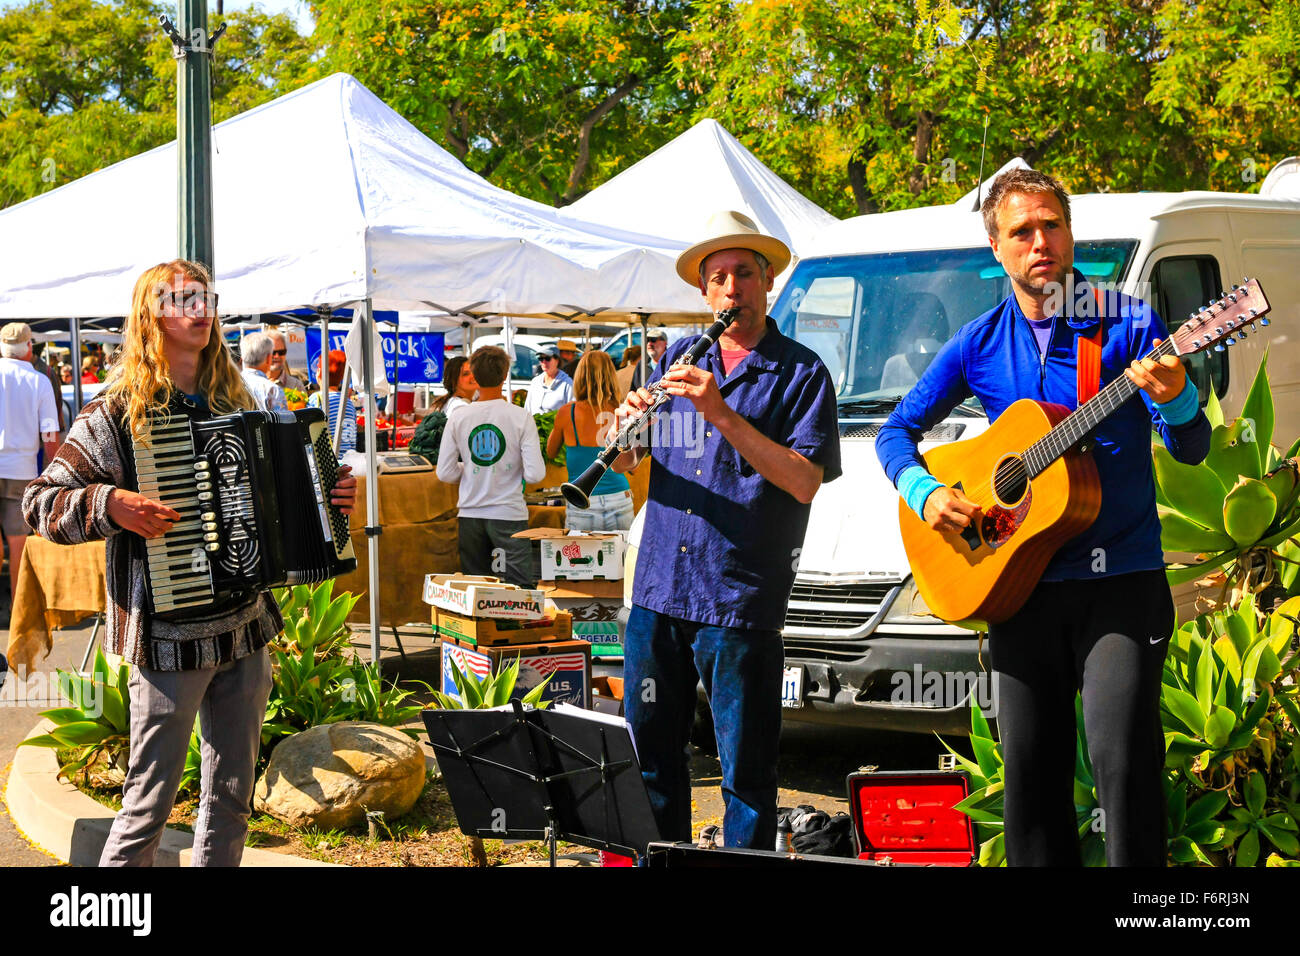 Musicians entertain the shoppers at the weekly Saturday Farmers Market in Santa Barbara, California - Stock Image